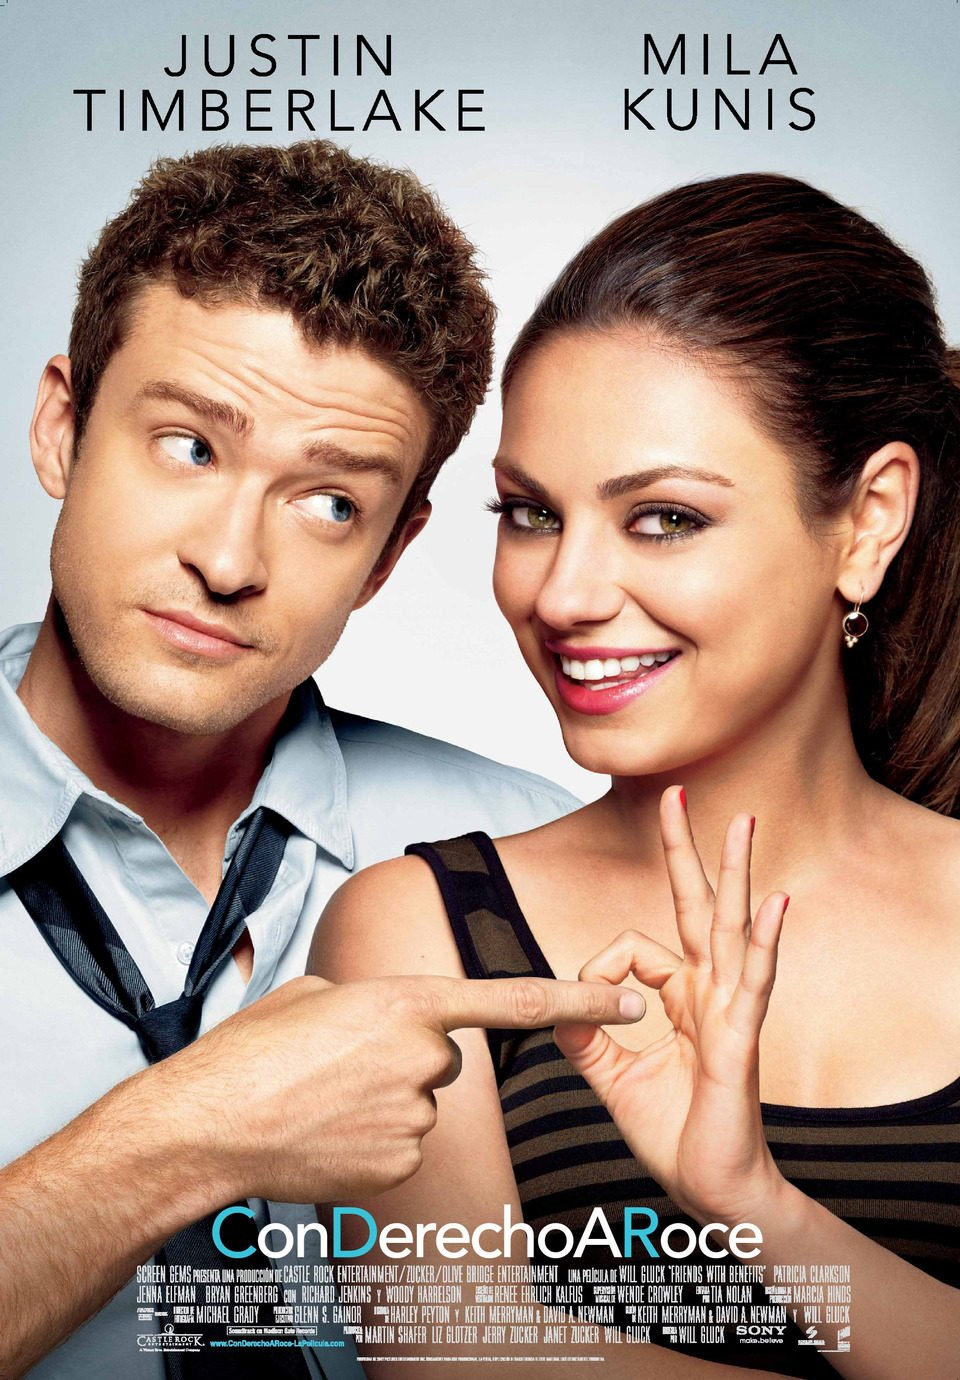 España poster for Friends with Benefits